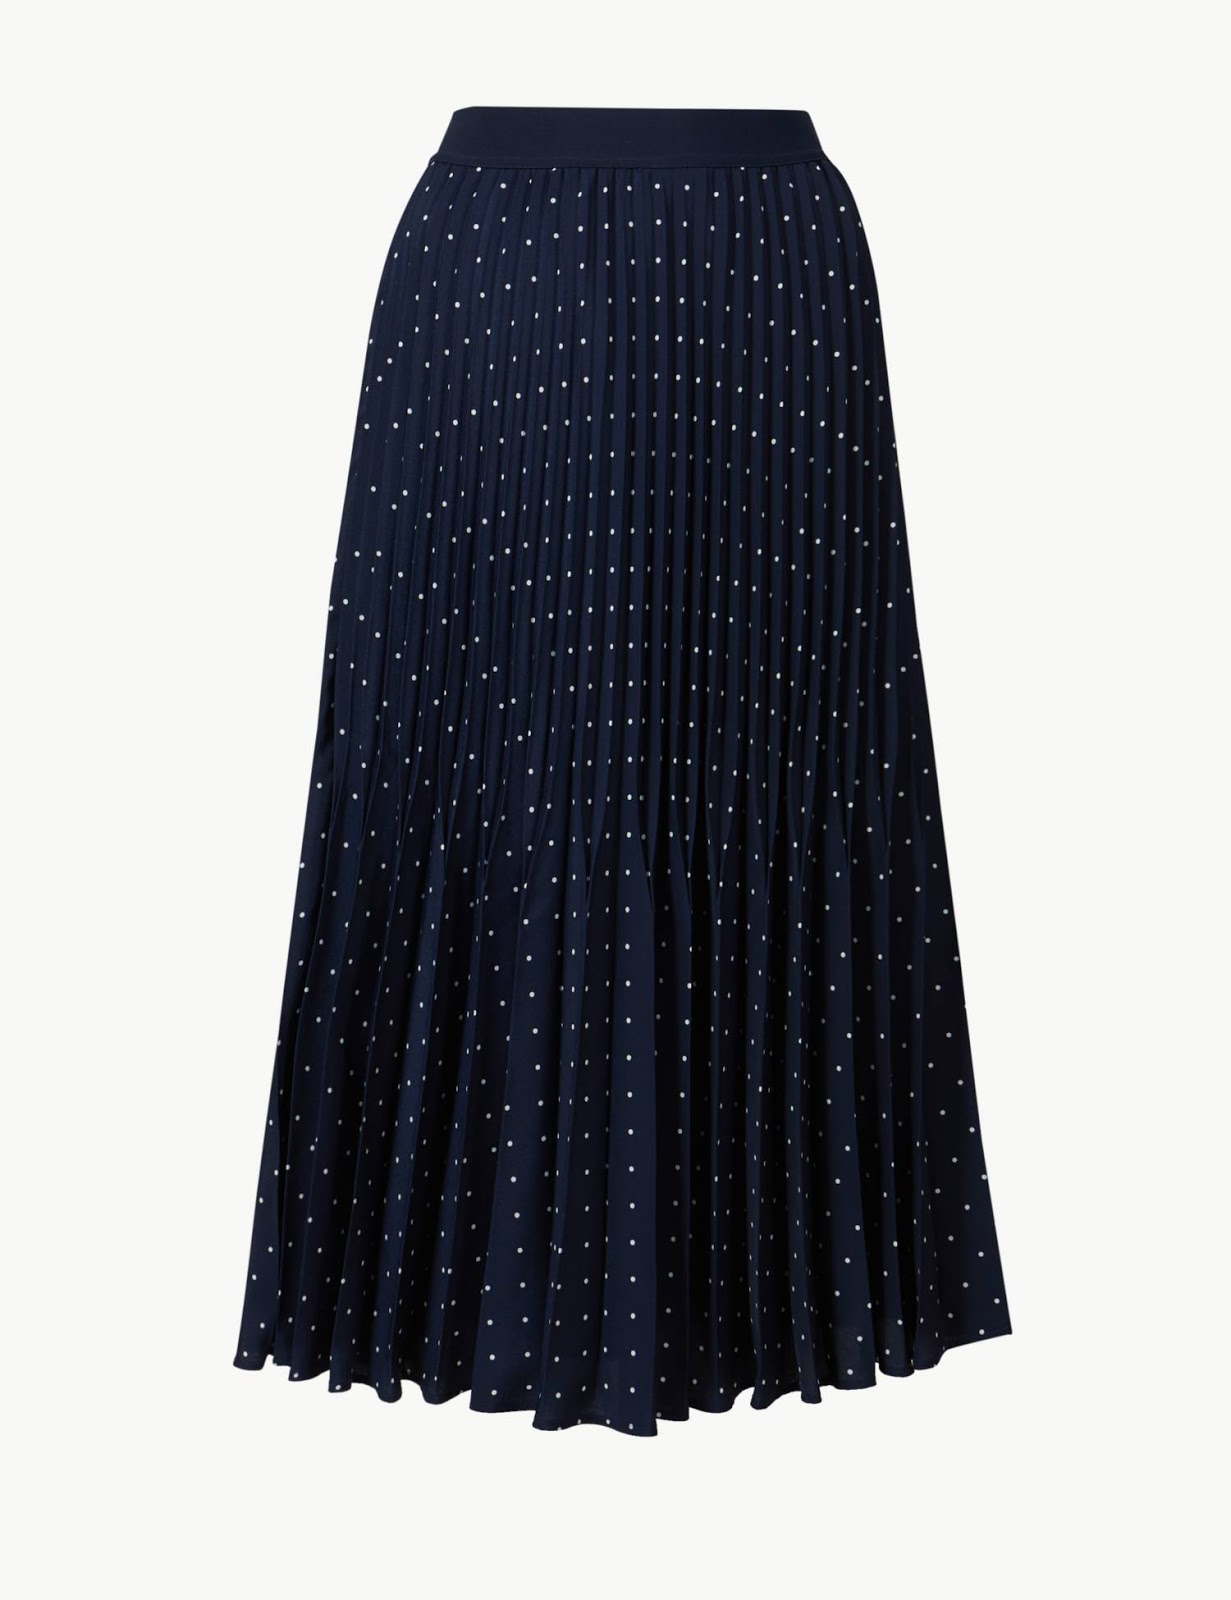 marks and spencer polka dot pleated midi skirt